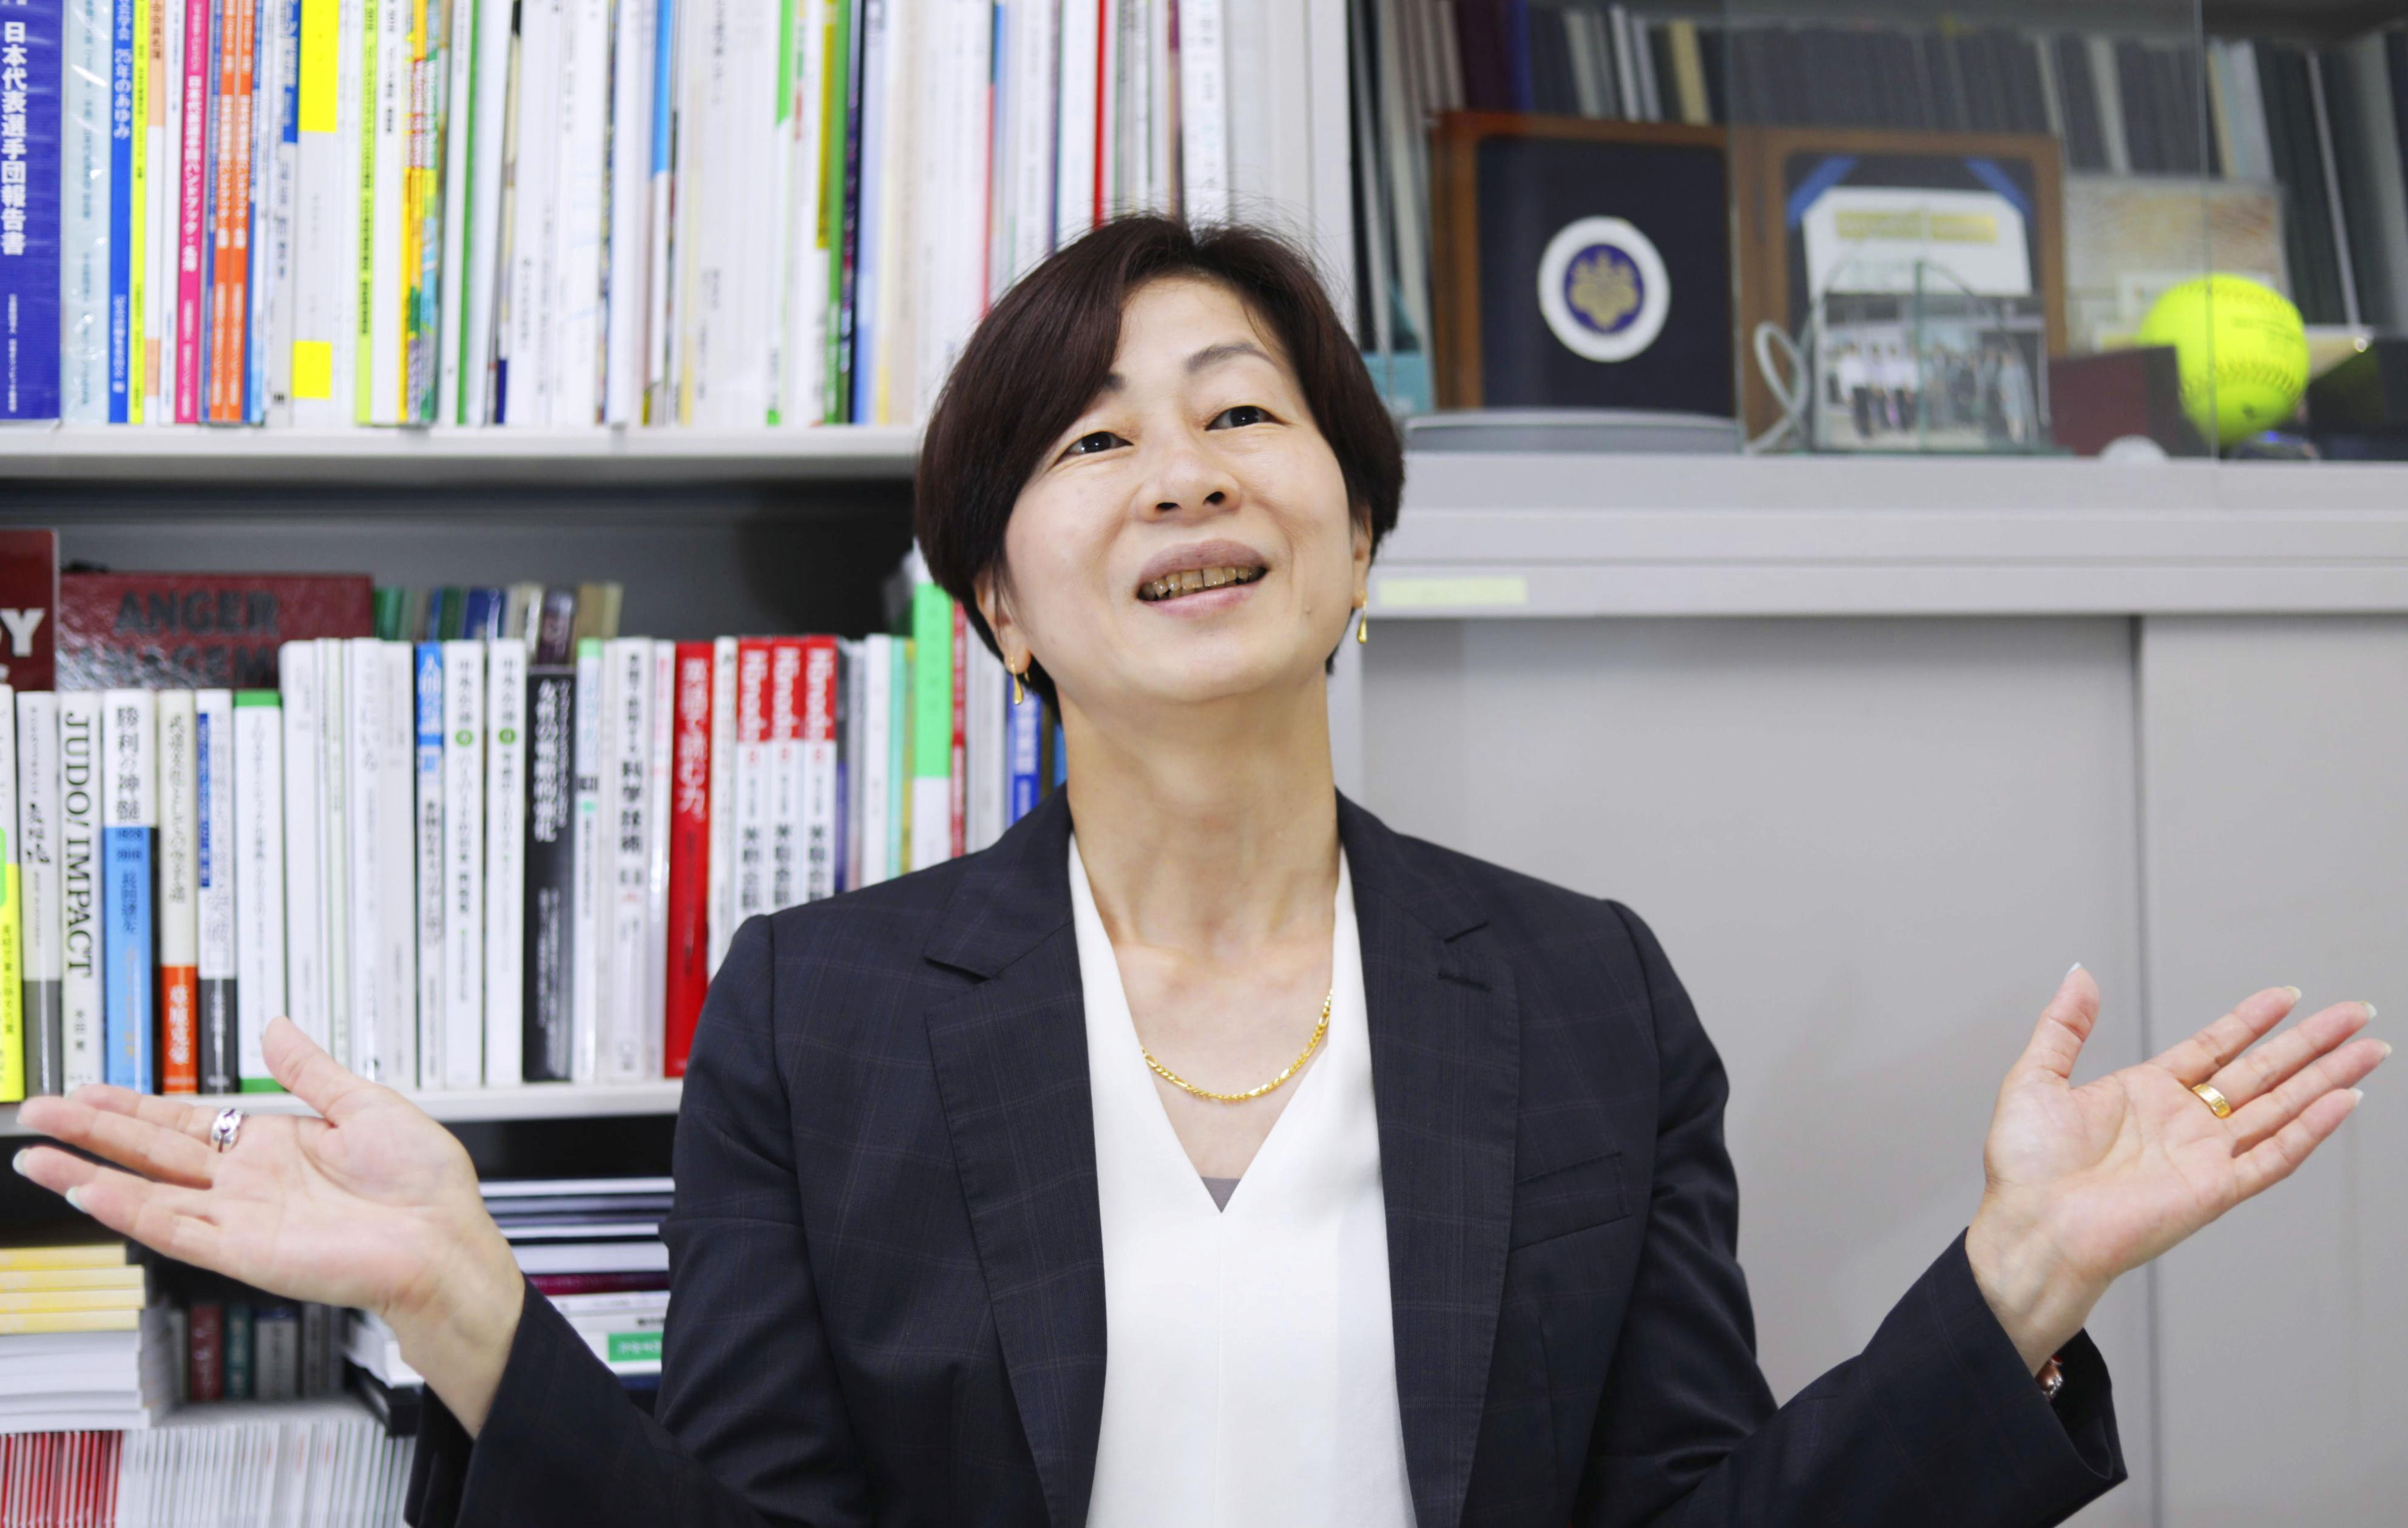 Kaori Yamaguchi, a member of the Japanese Olympic Committee's Executive Board, gives an interview in Tokyo, Japan May 19, 2021, in this photo taken by Kyodo. Picture taken May 19, 2021. Kyodo/via REUTERS